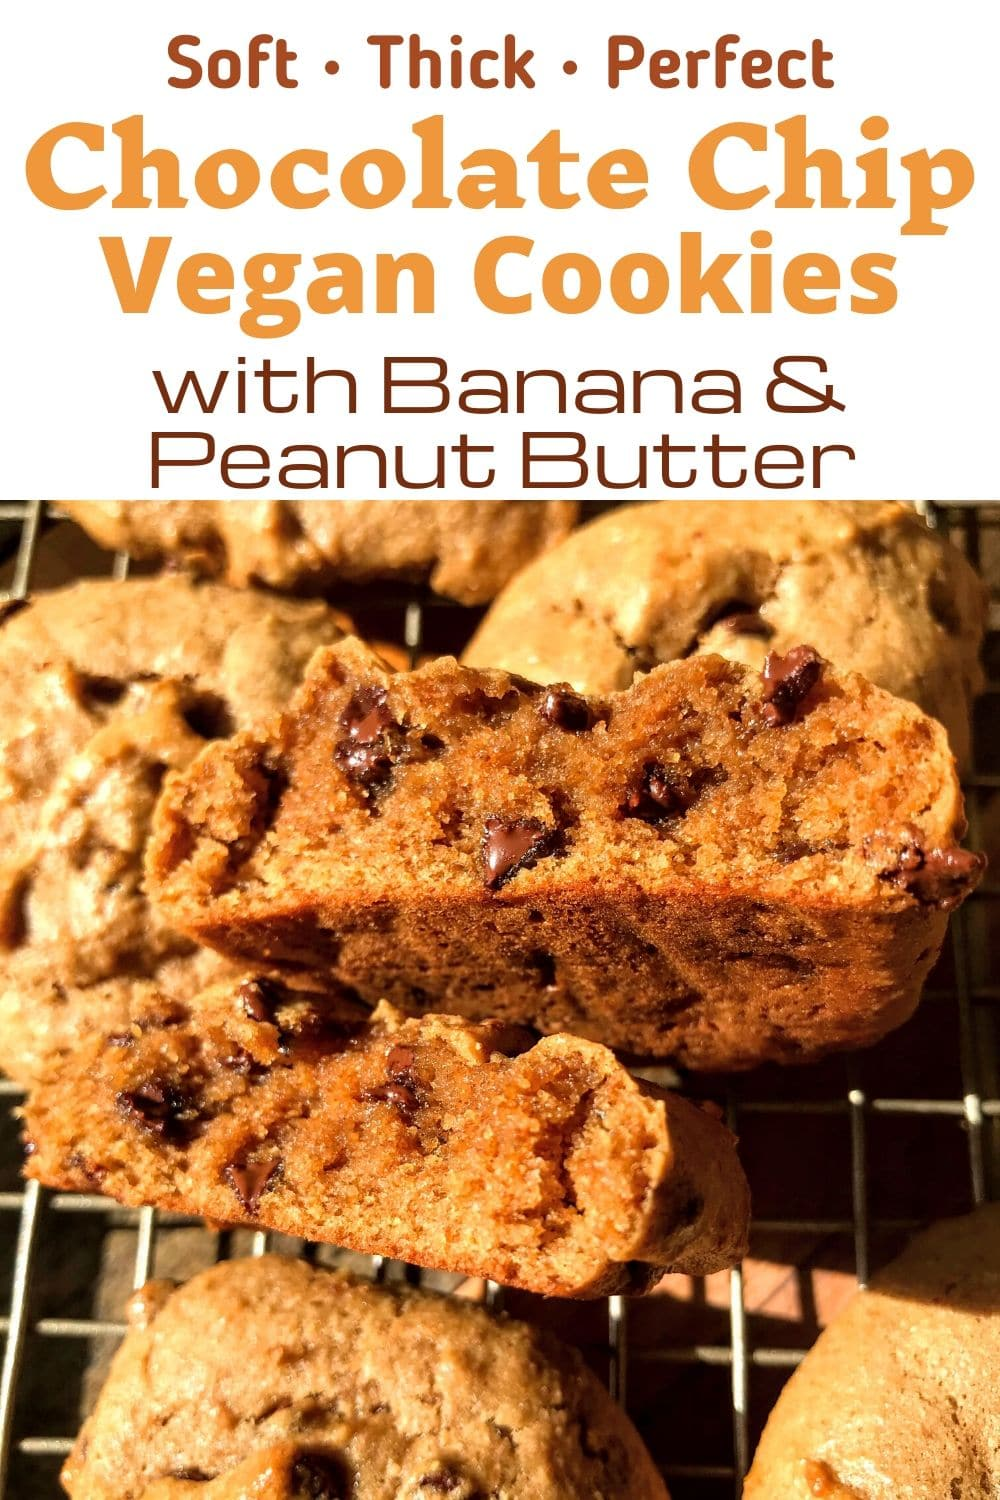 Soft Thick Perfect Vegan Chocolate Chip Cookies with Peanut Butter & Banana for Pinterest